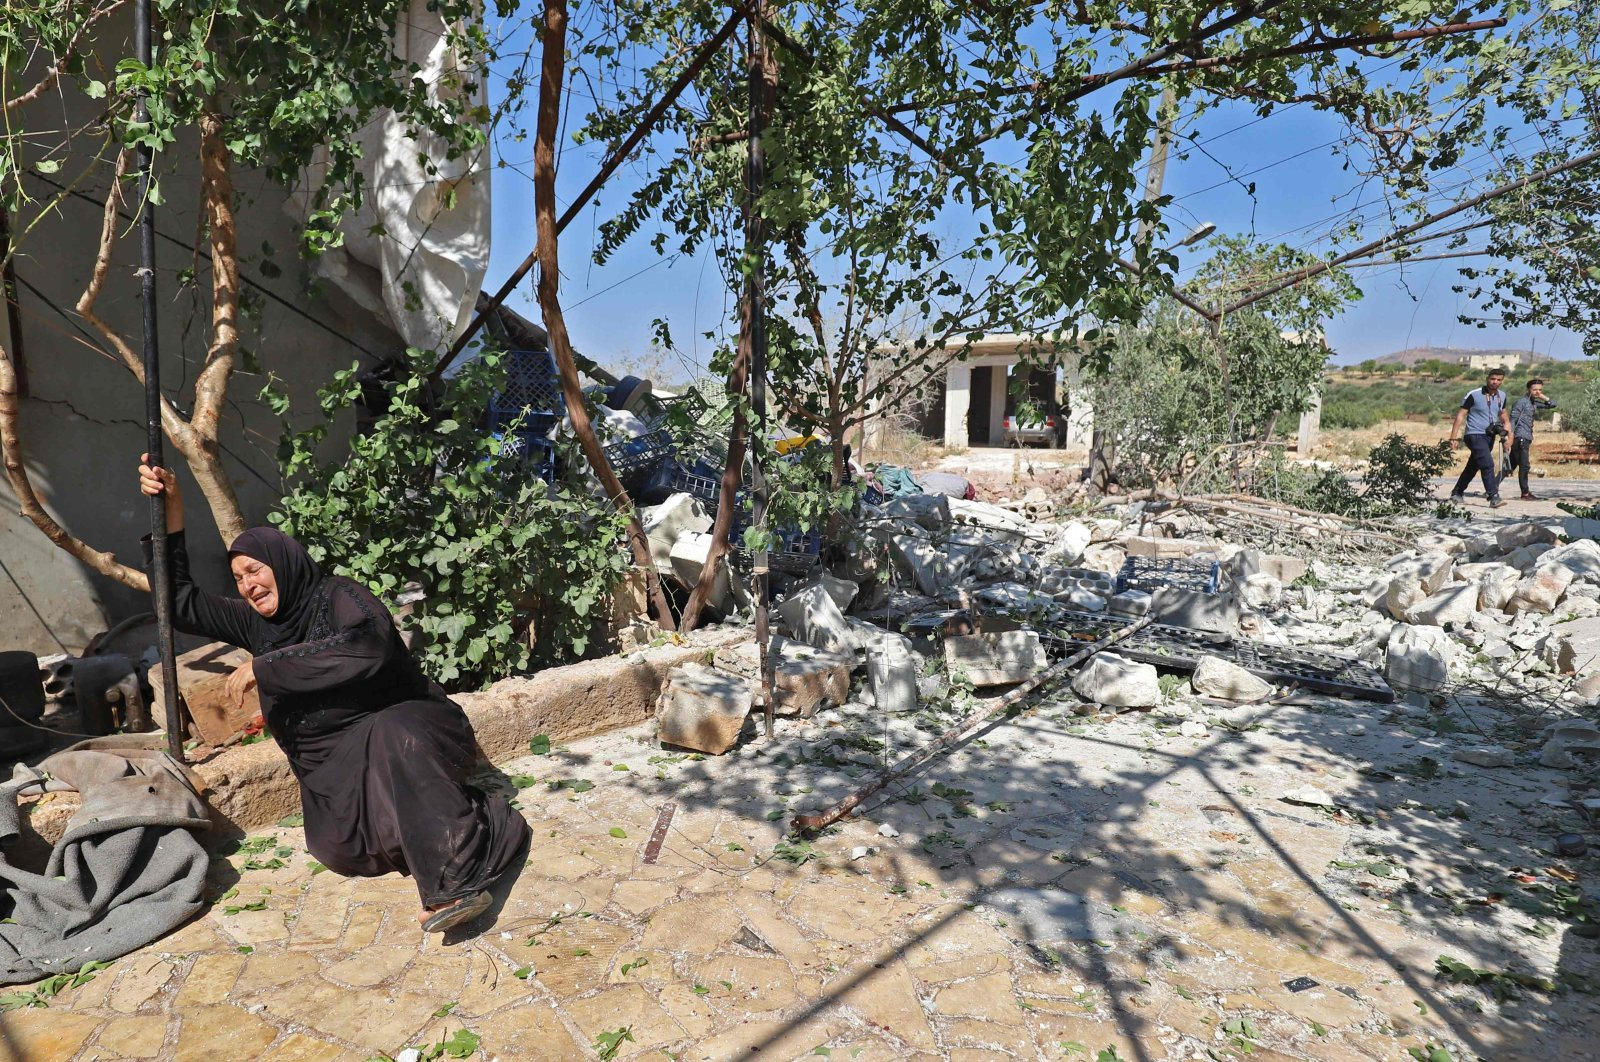 A Syrian woman reacts near the ruins of a house, destroyed in a reported regime artillery shelling, in the village of Iblin in the Jabal al-Zawiya region of Syria's opposition-held northwestern Idlib province, July 22, 2021. (AFP Photo)